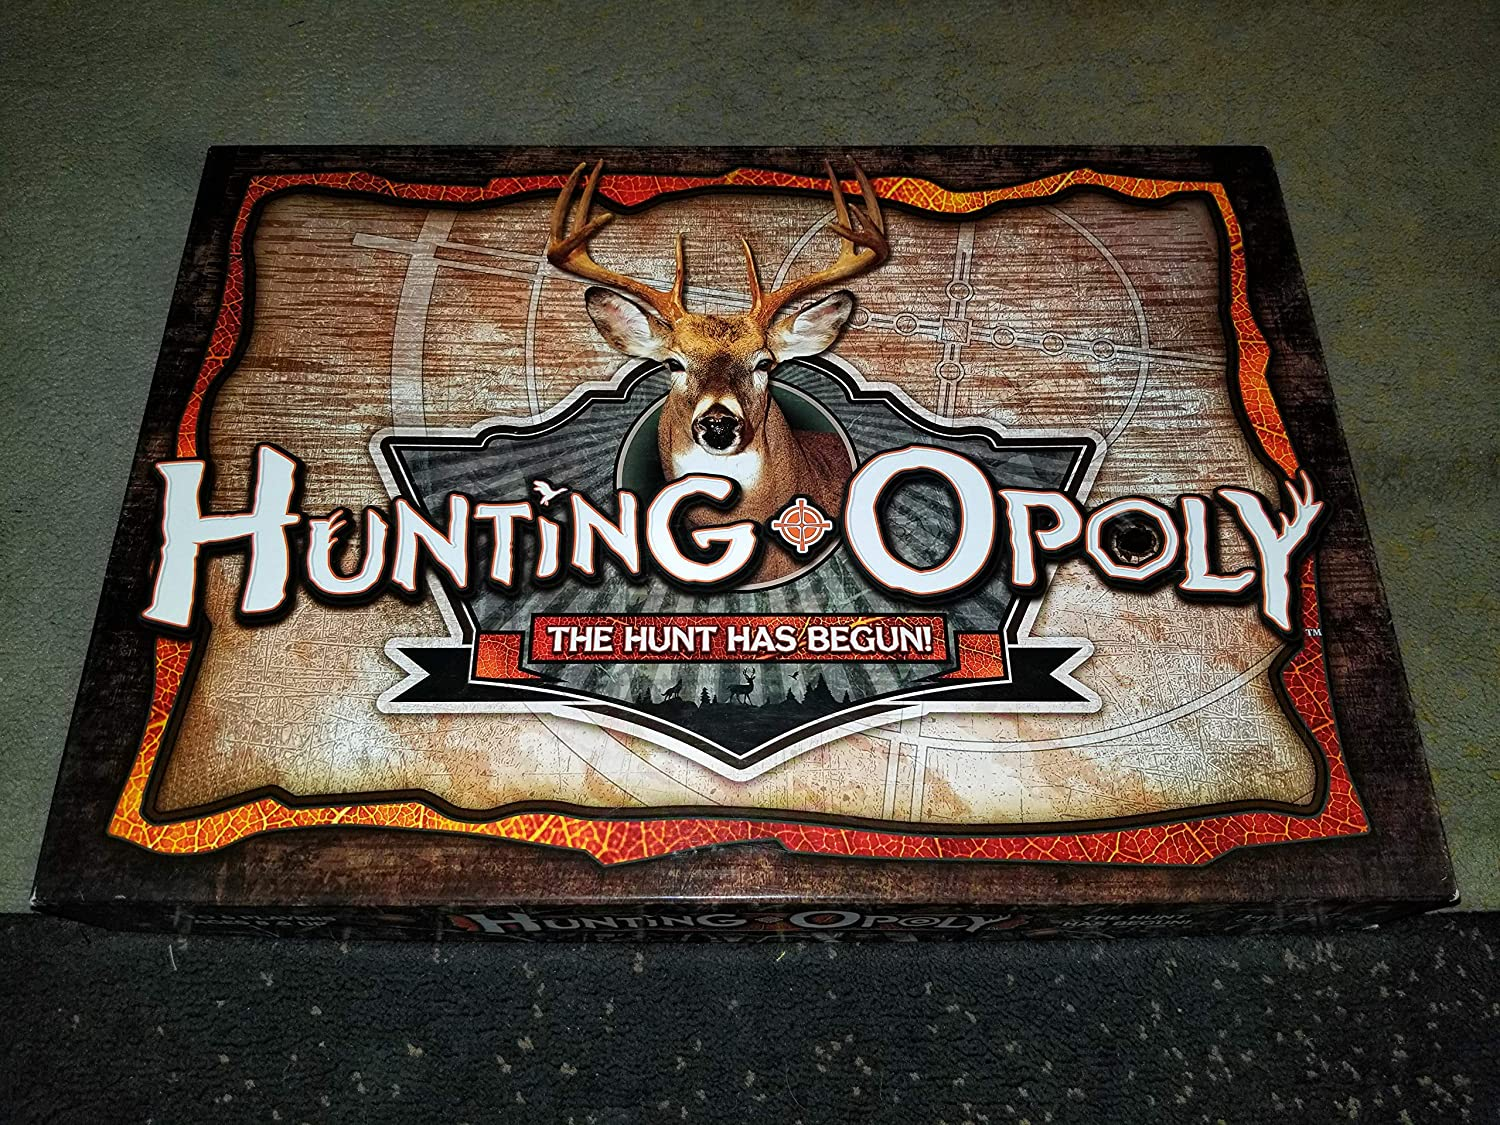 Hunting-opoly Board Game by Late for for for the Sky 54241a